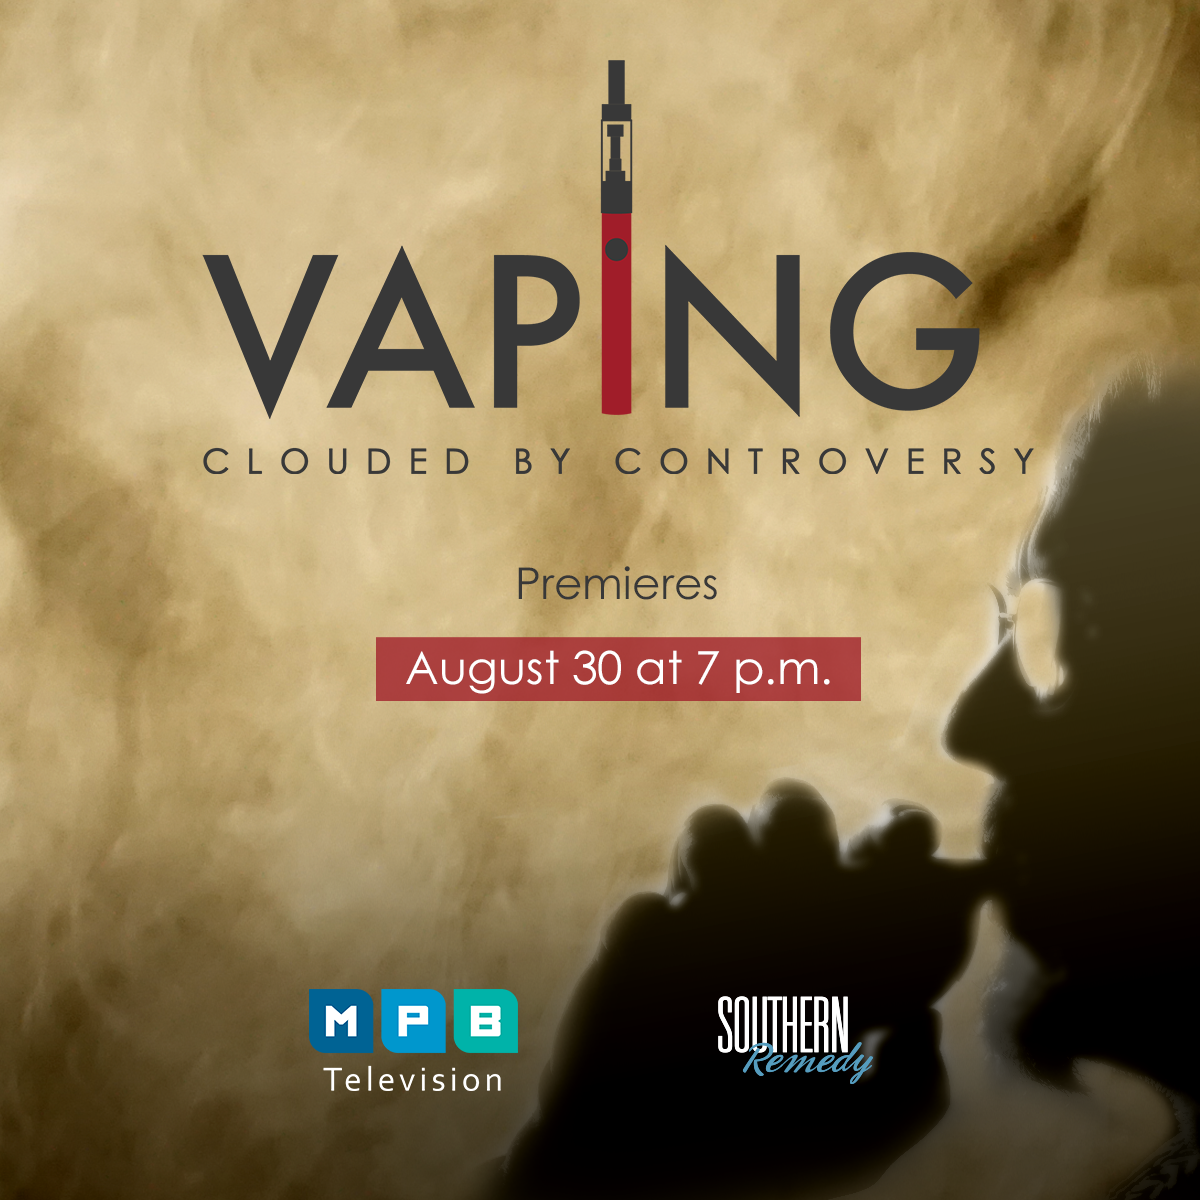 Watch Southern Remedy, Vaping: Clouded in Controversy, Thursday, August 30 at 7 p.m. on MPB TV.